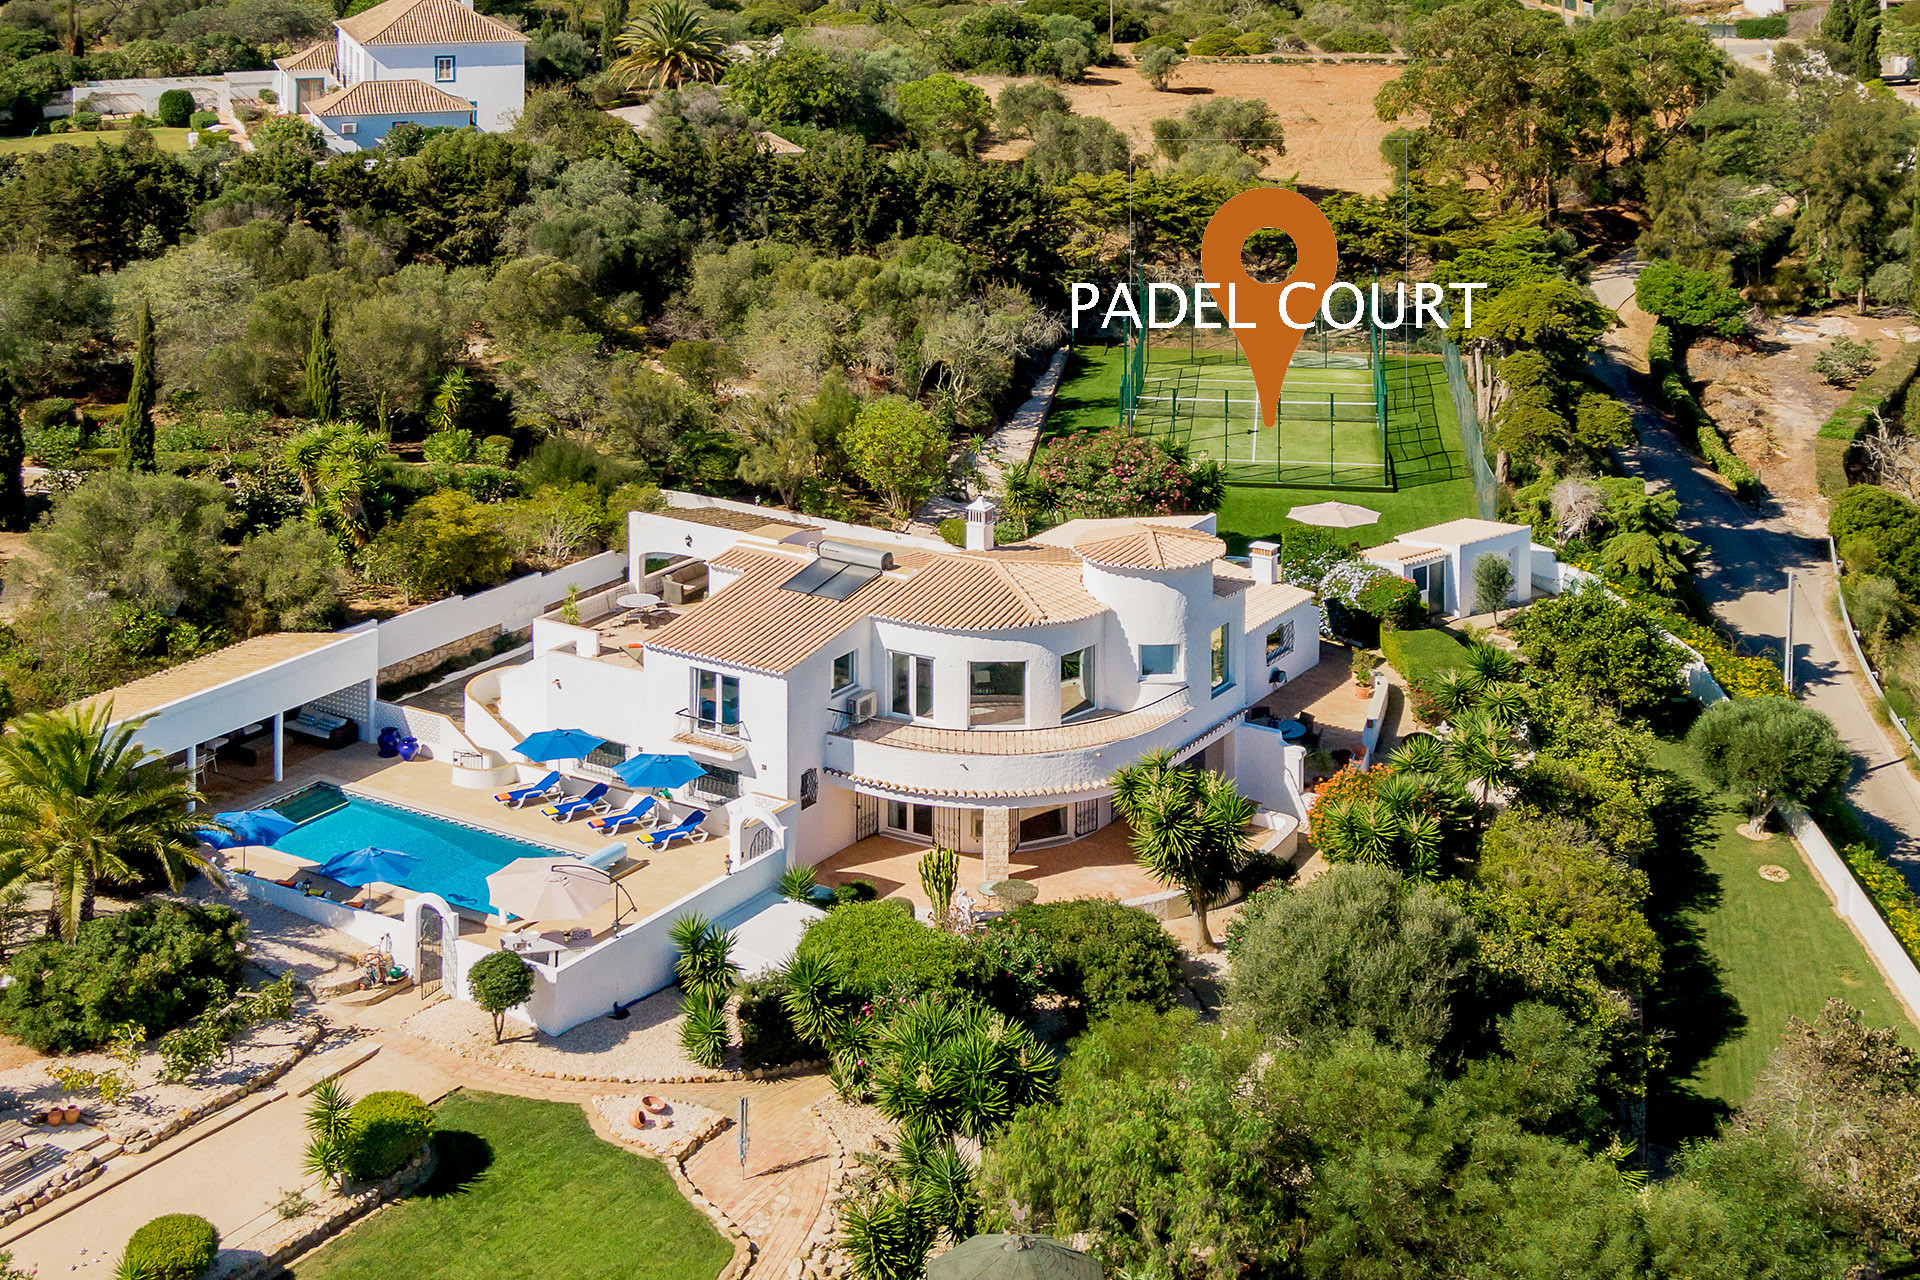 Villa/Dettached house in Lagos - Villa   High-Speed Internet   A/C   Padel Court   Boules Court   Putting Green   Heated Private Pool   Jacuzzi   Garden   Sea View   Secluded Villa [RLAG103]